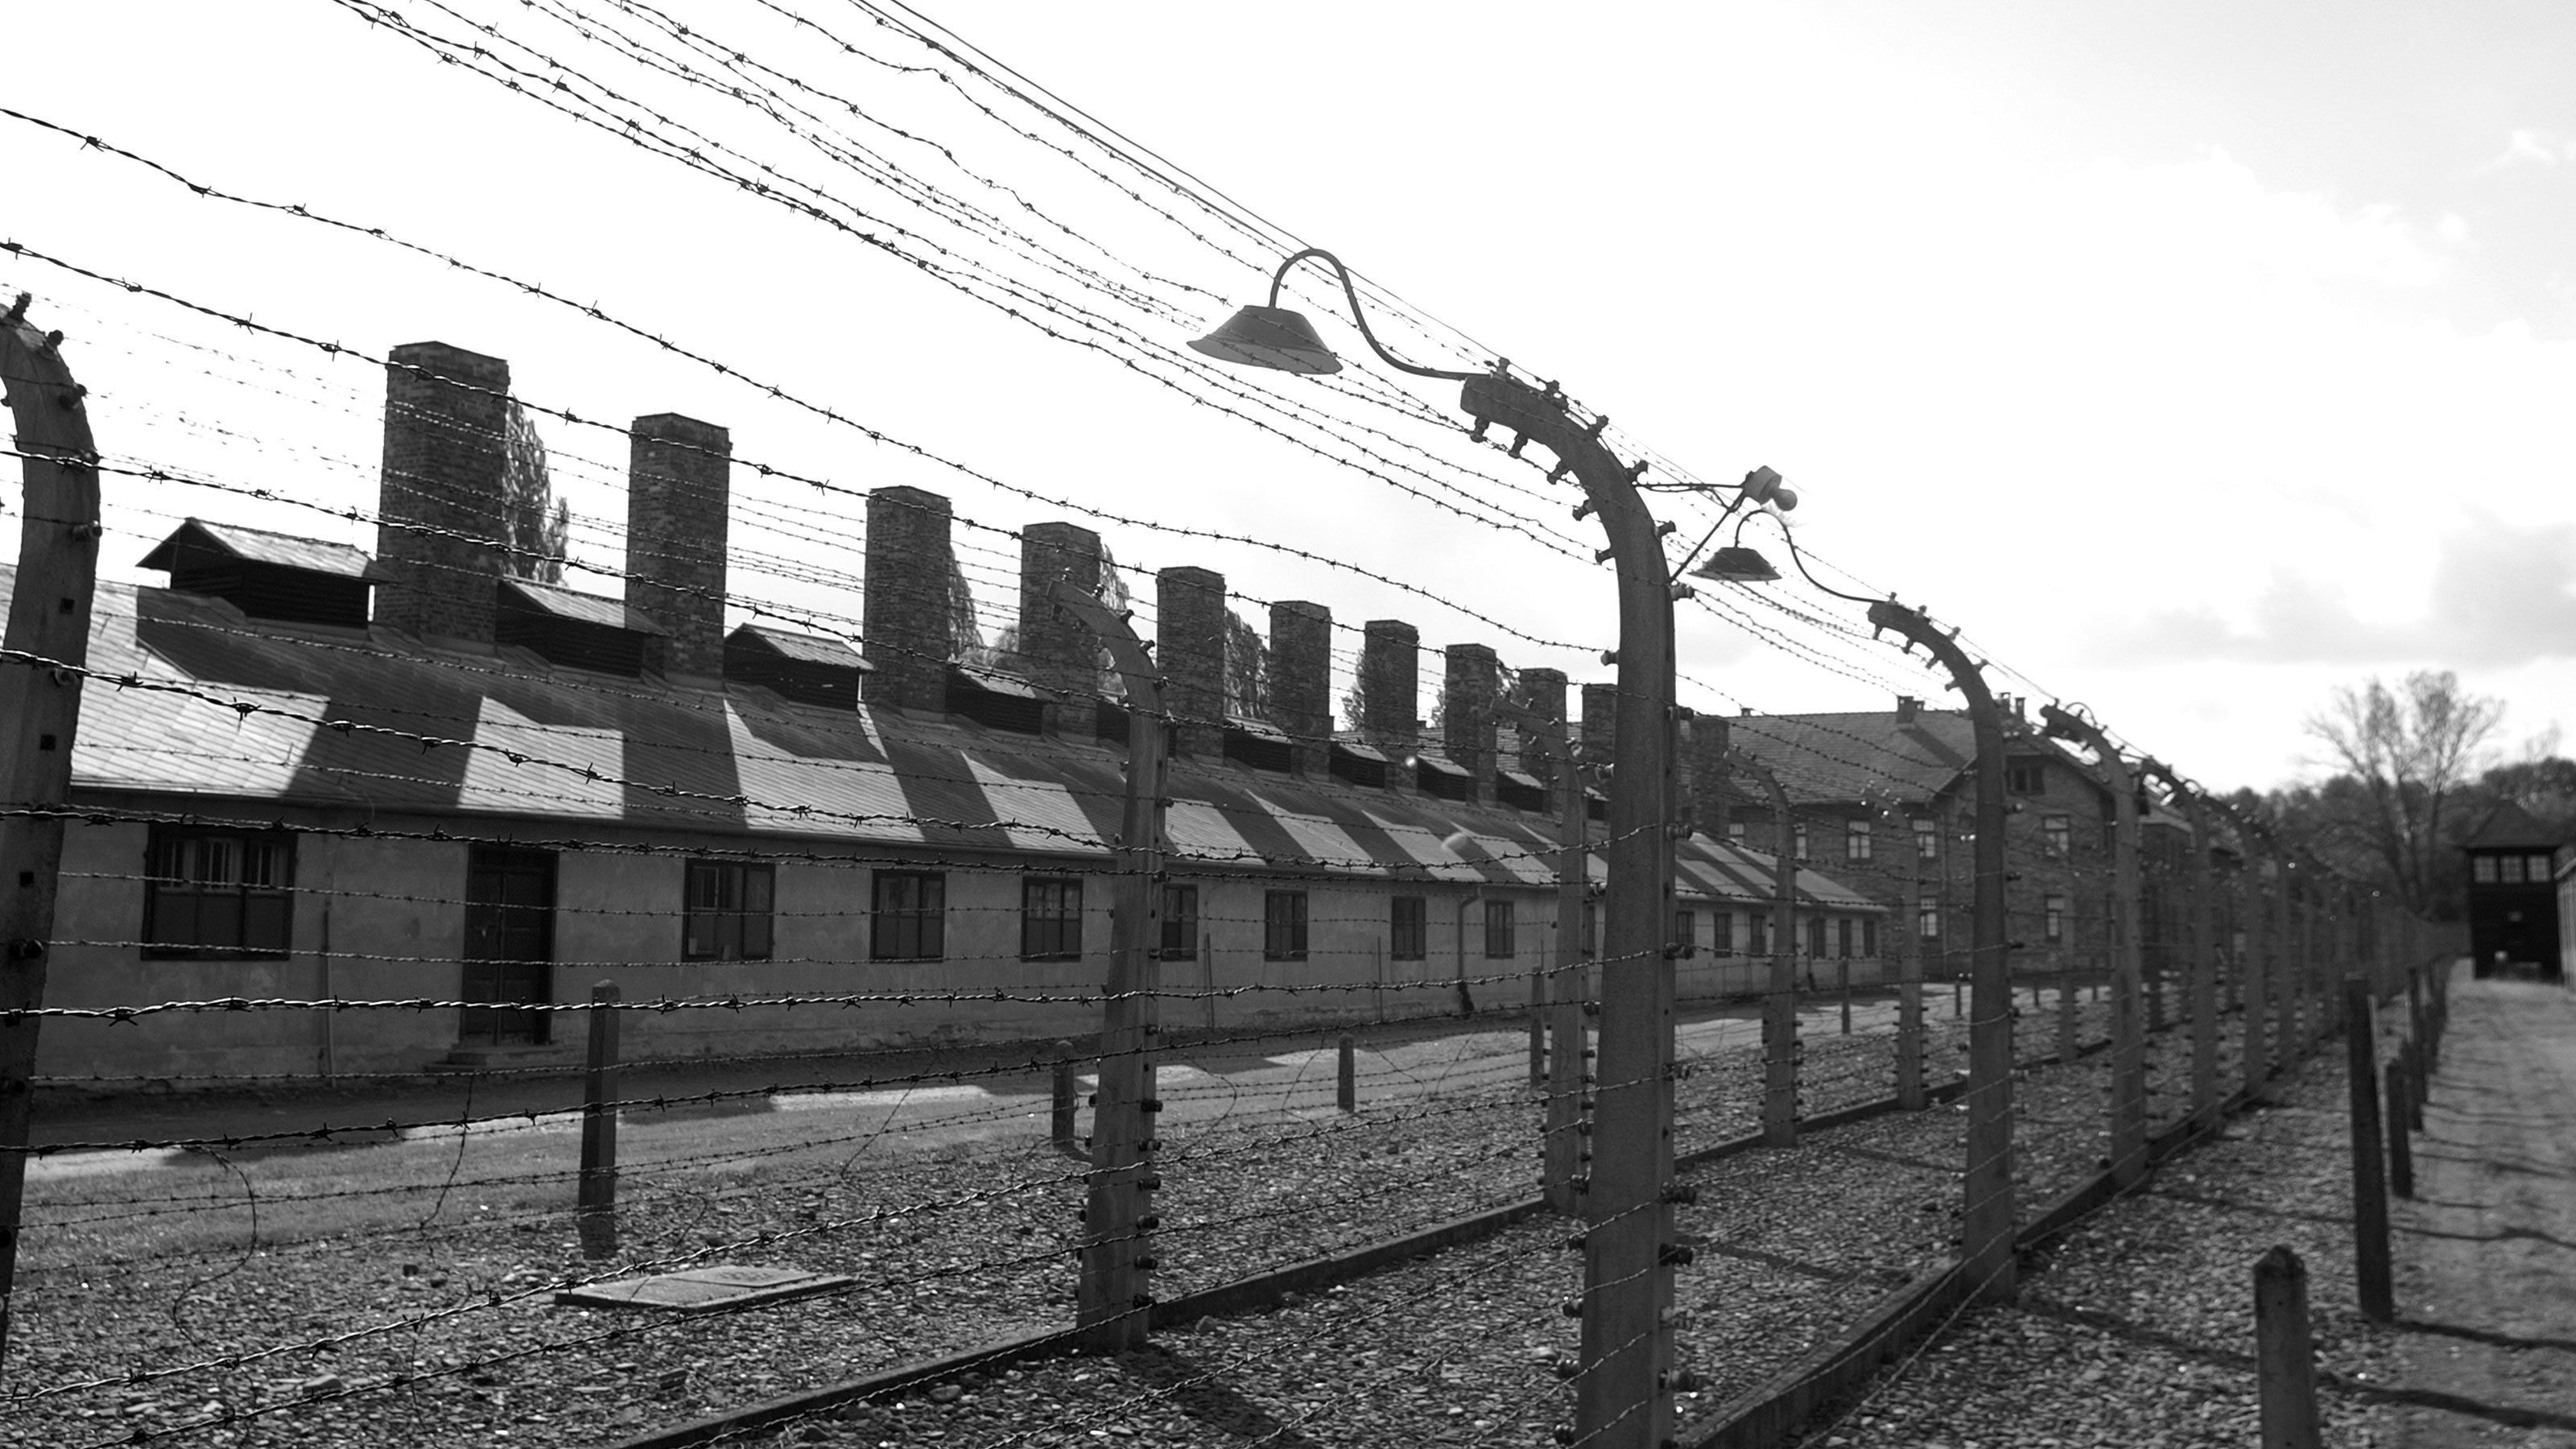 The barbed wire fences around Auschwitz